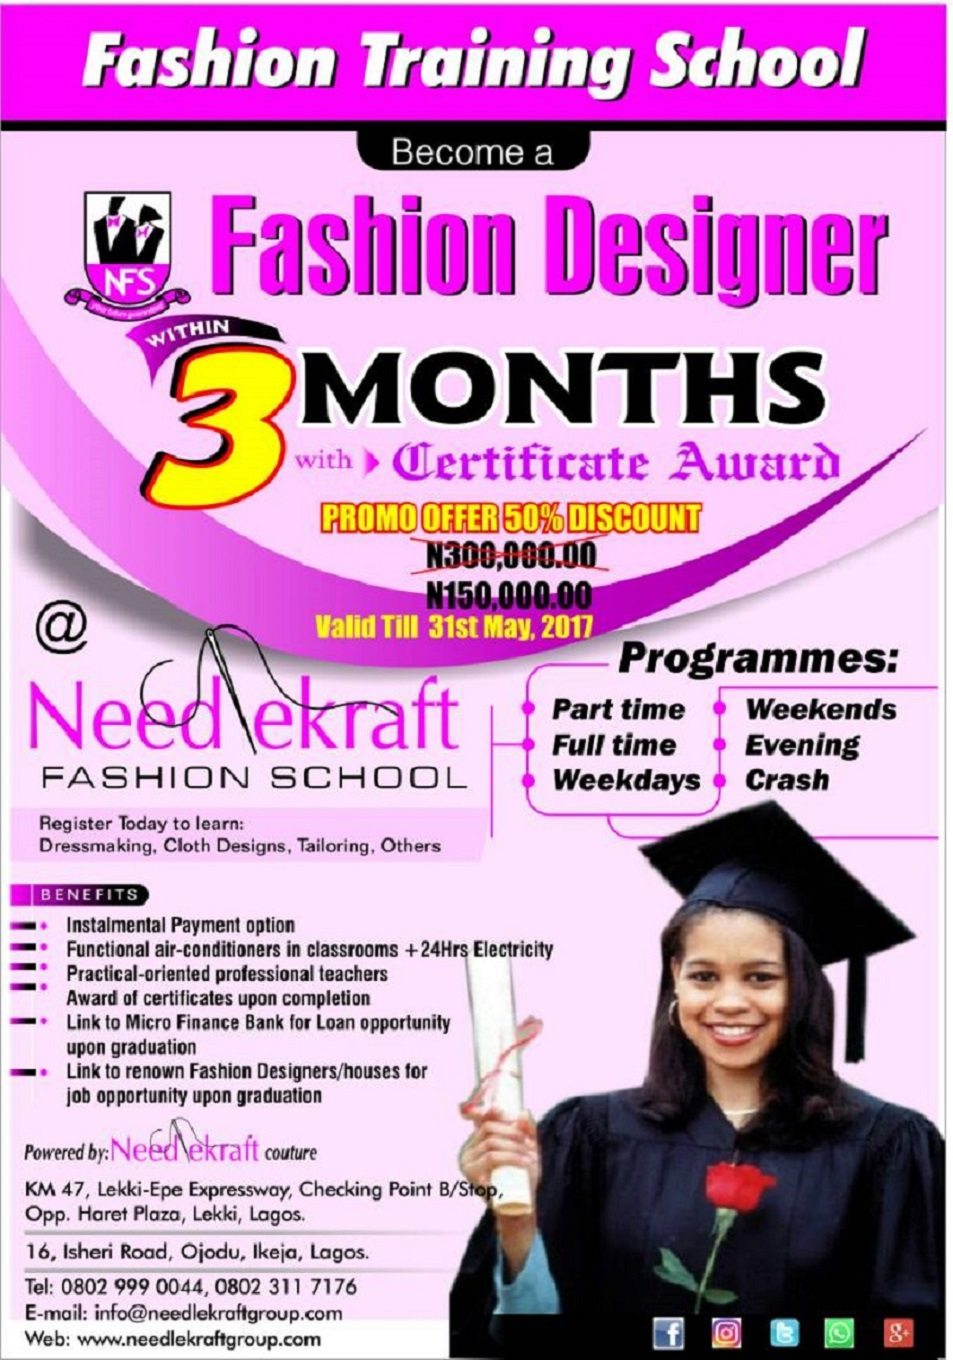 NEEDLEKRAFT FASHION SCHOOL